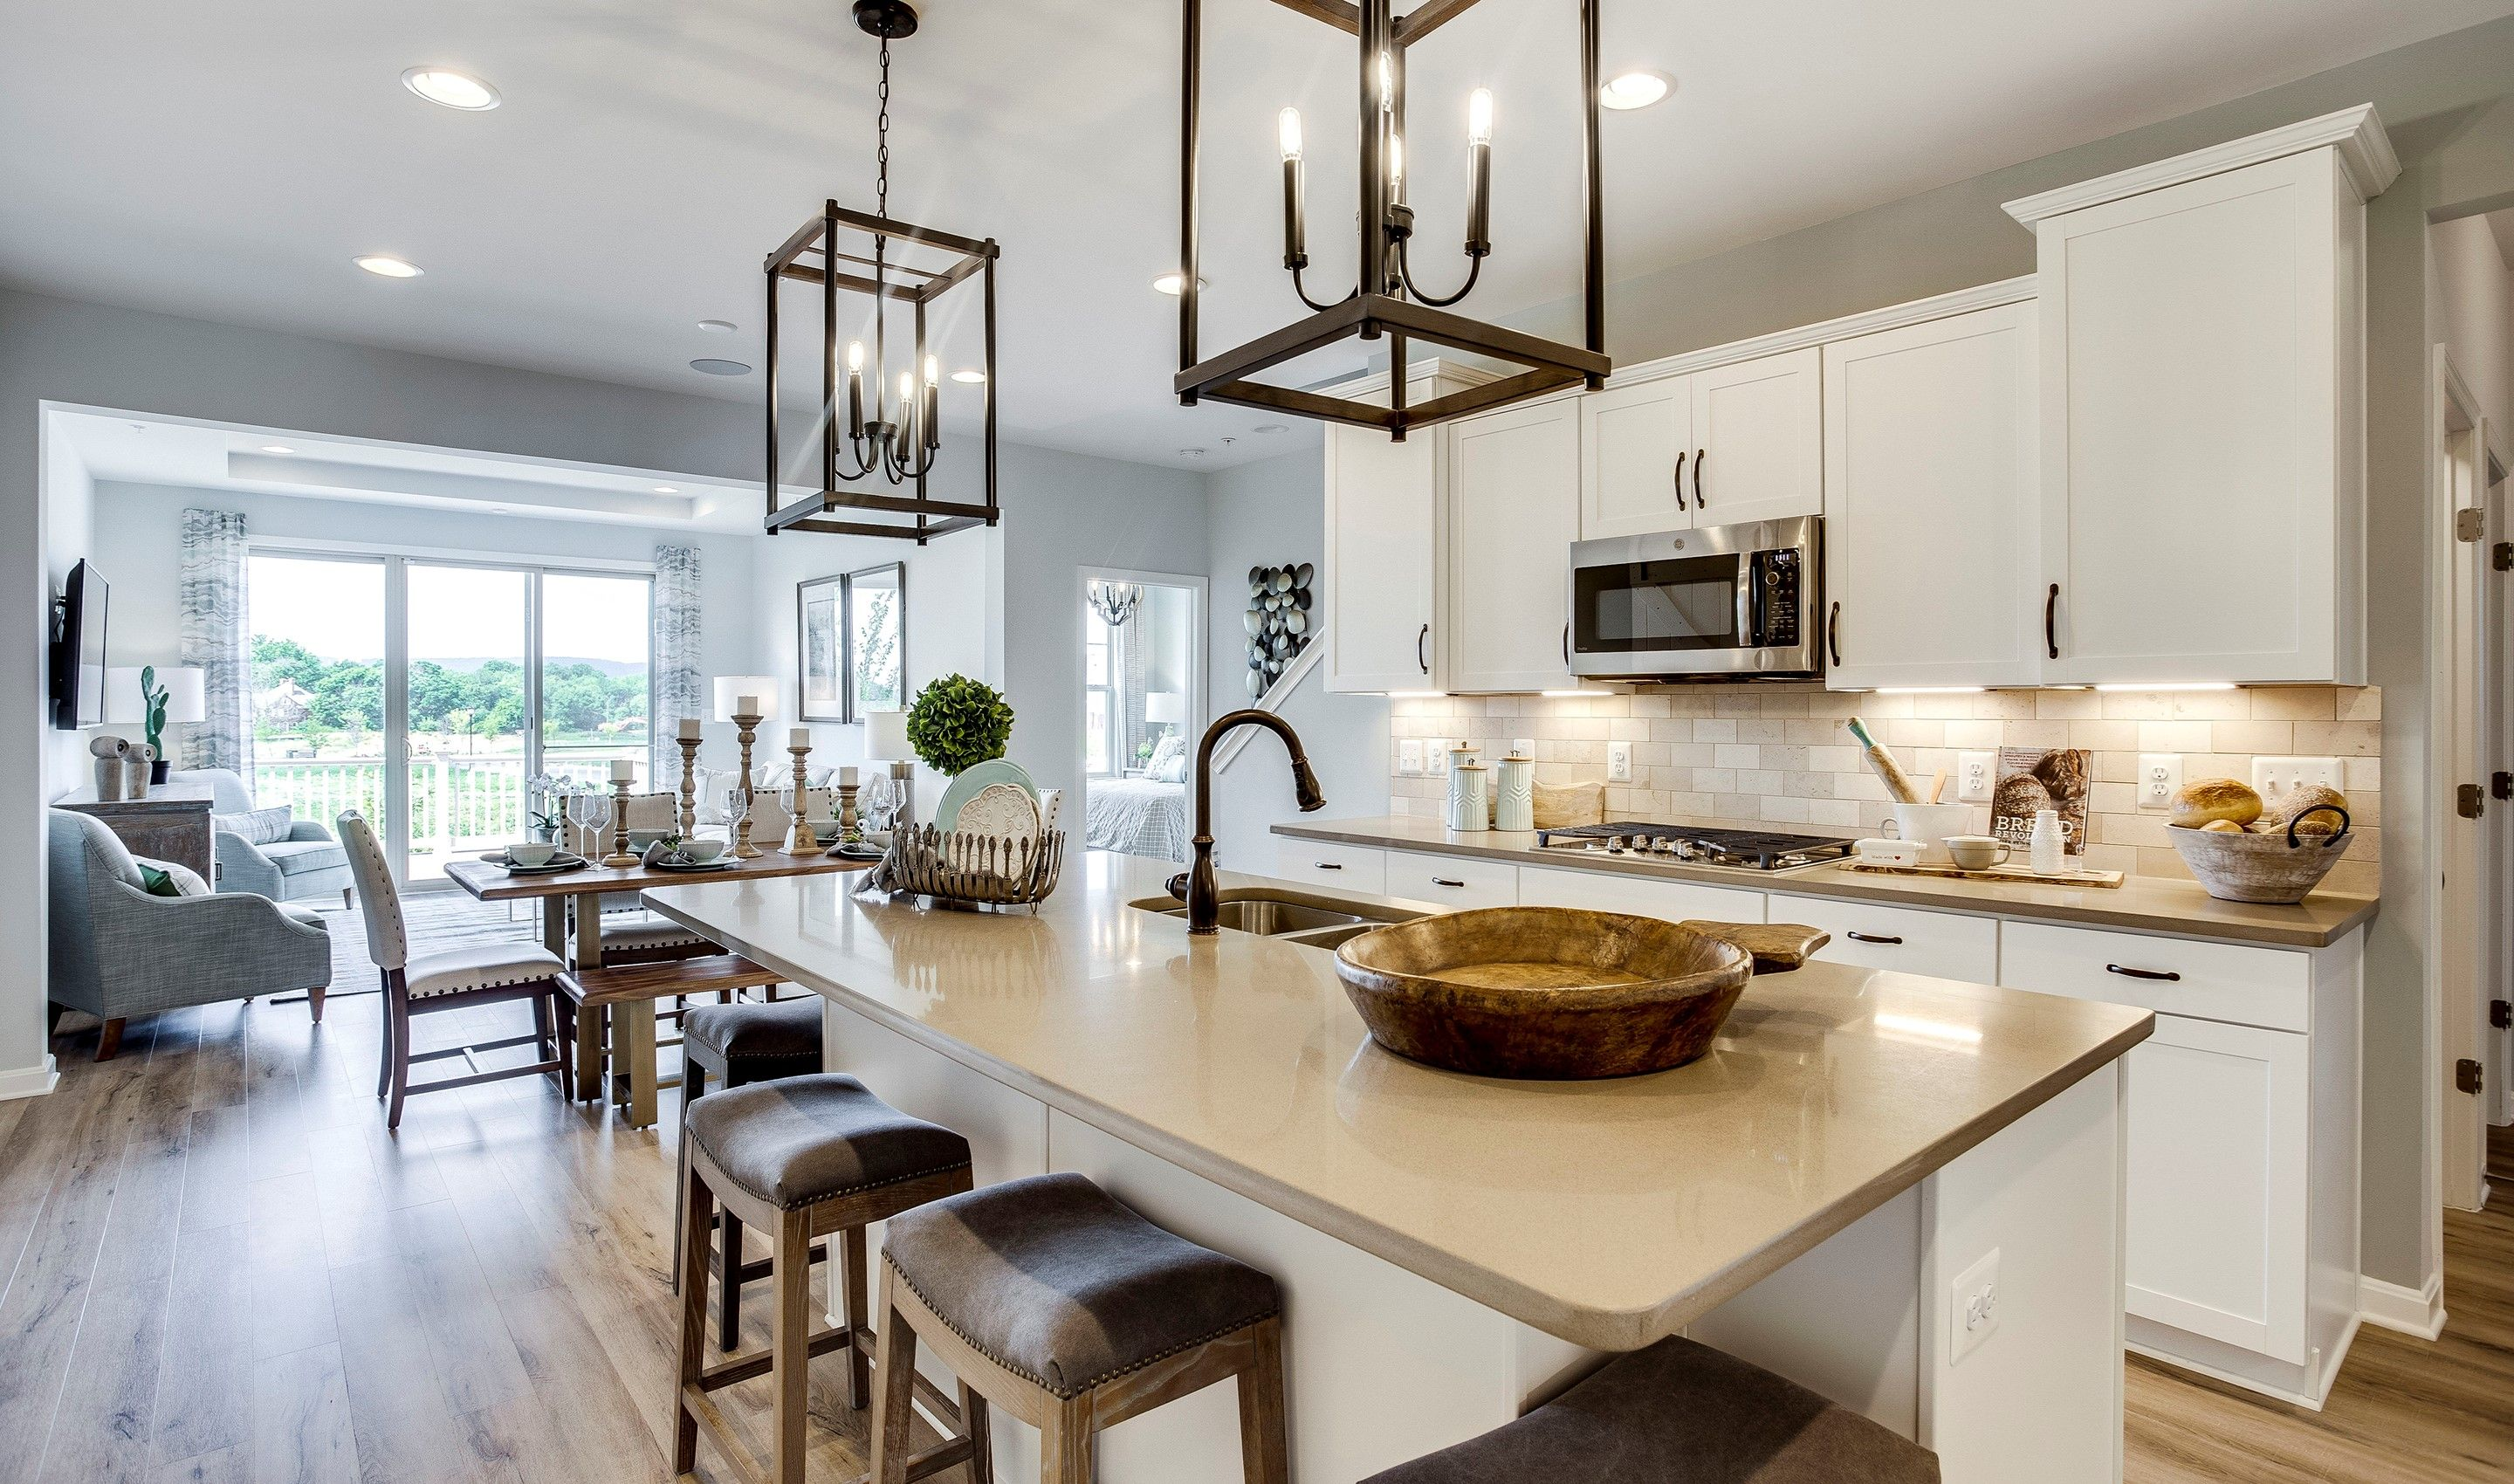 Kitchen featured in the Westminster - Basement By K. Hovnanian® Homes in Washington, MD